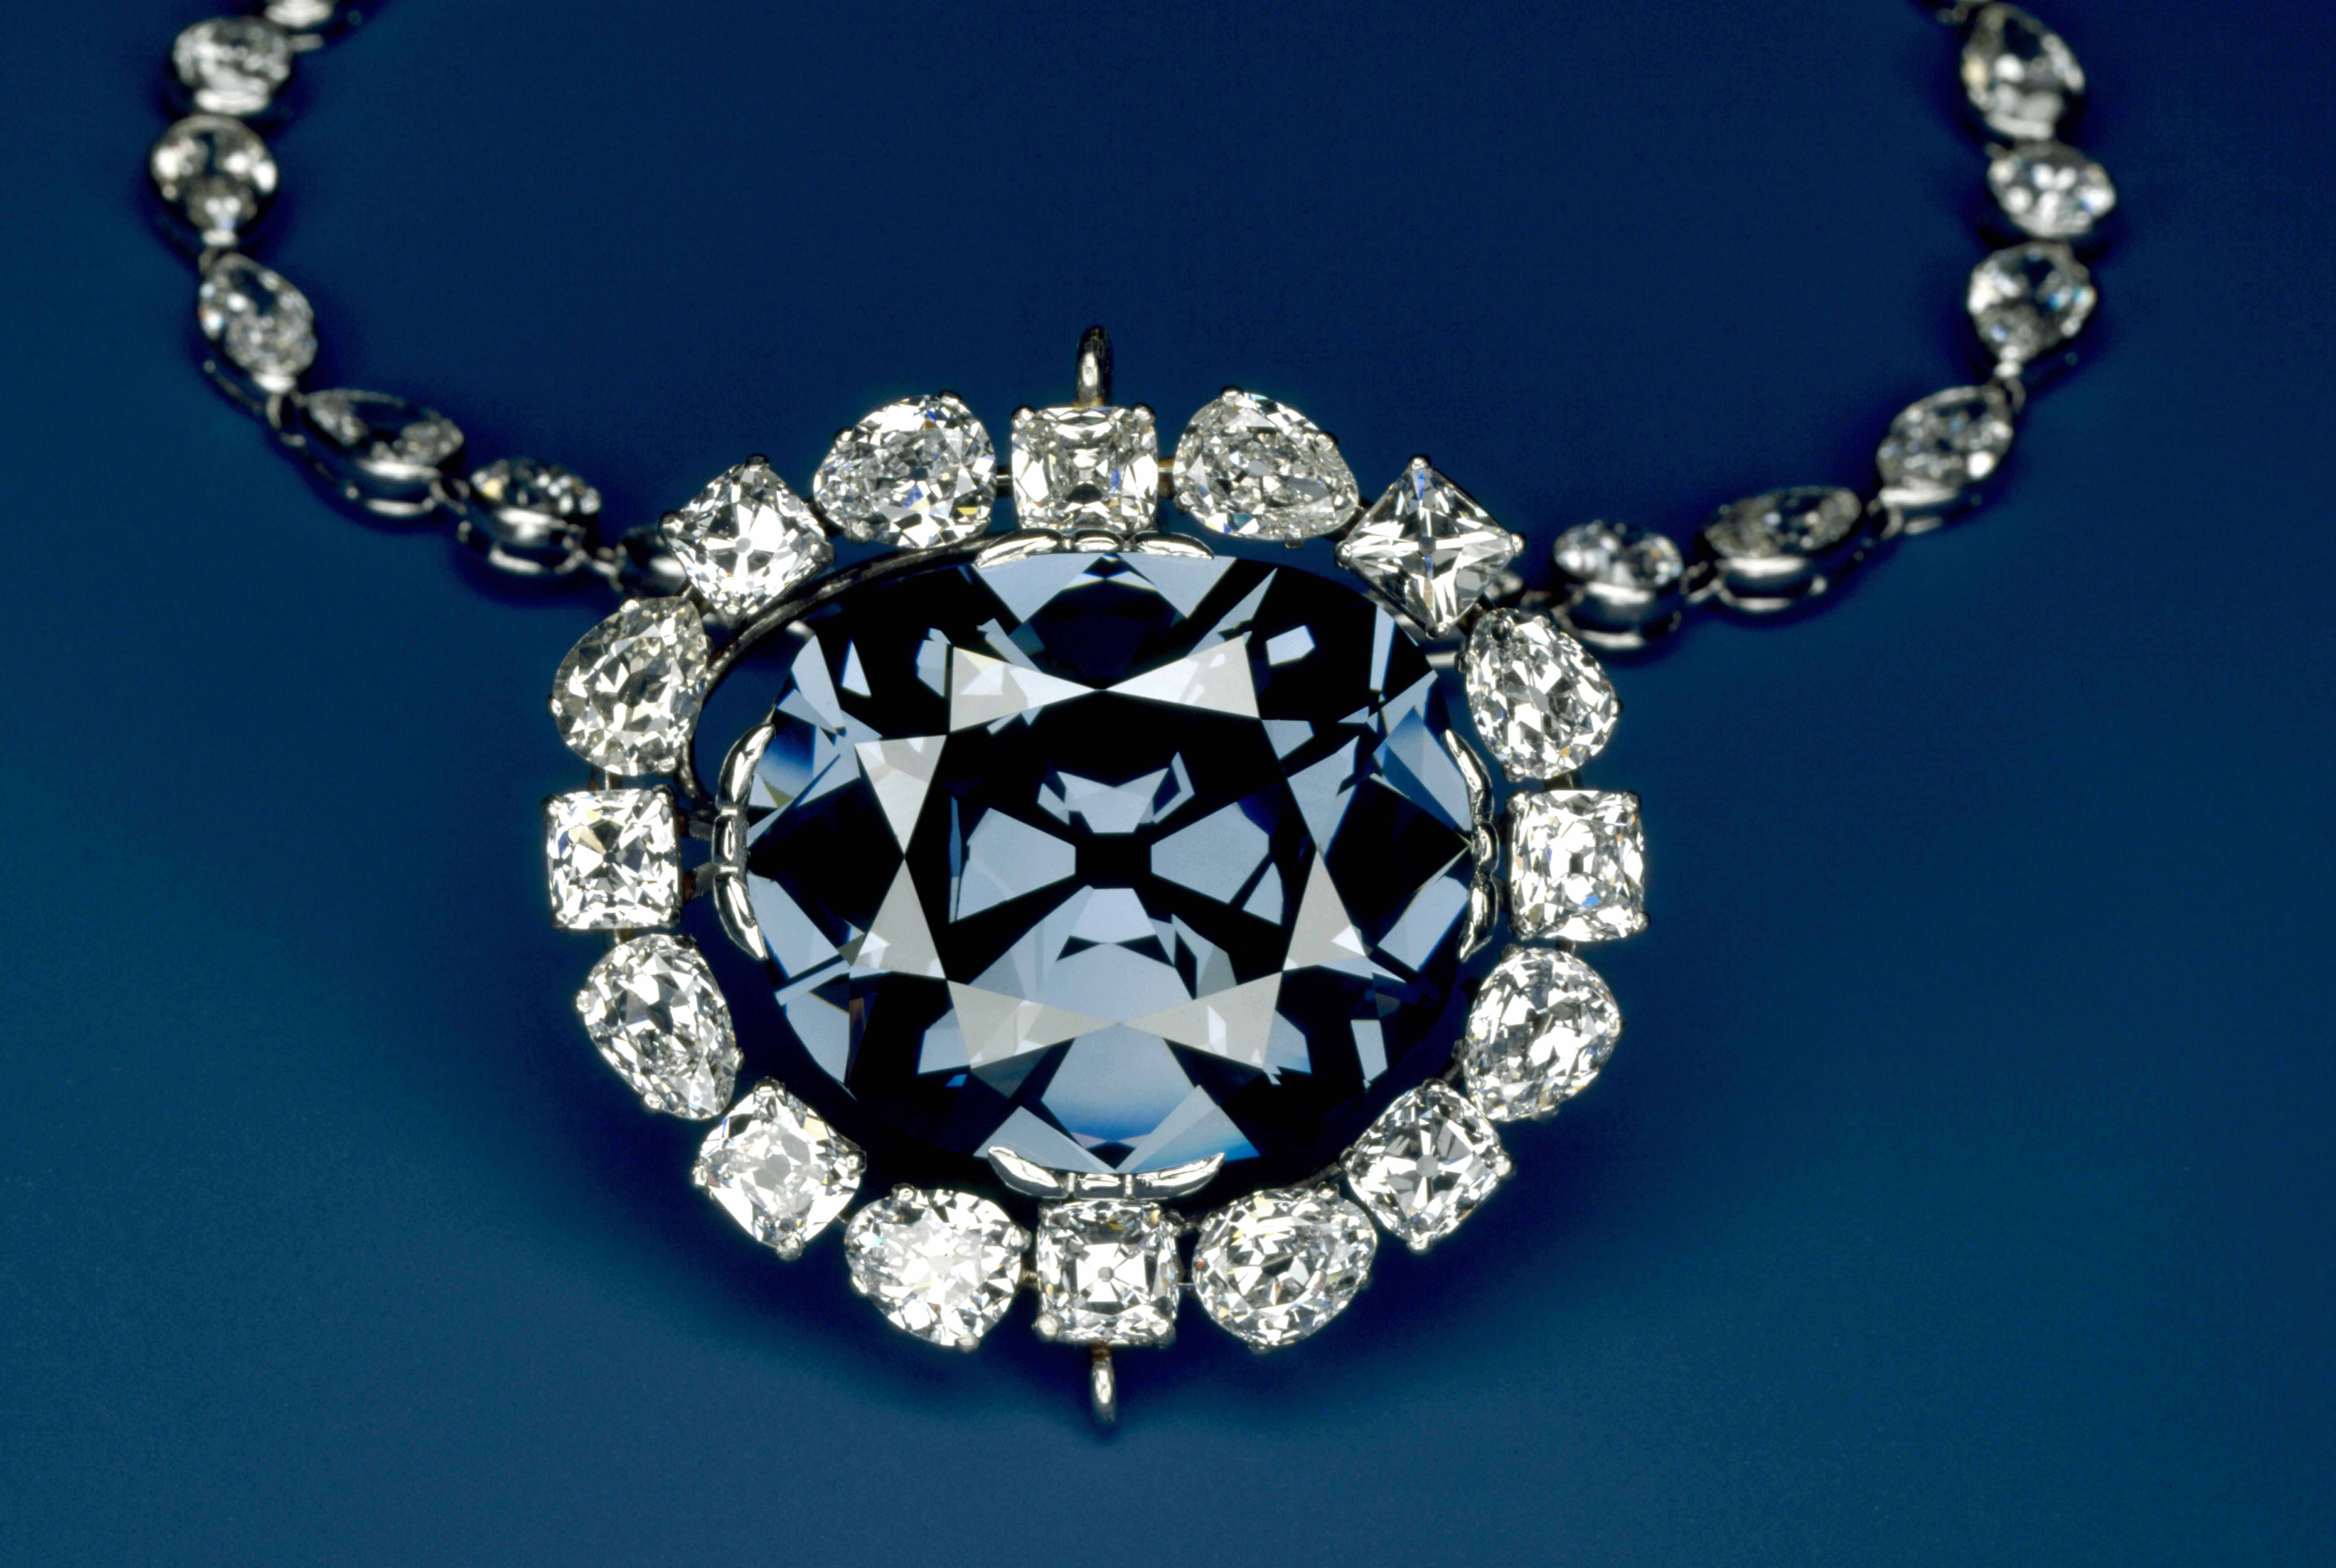 The Hope Diamond: The Reality and the Fantasy